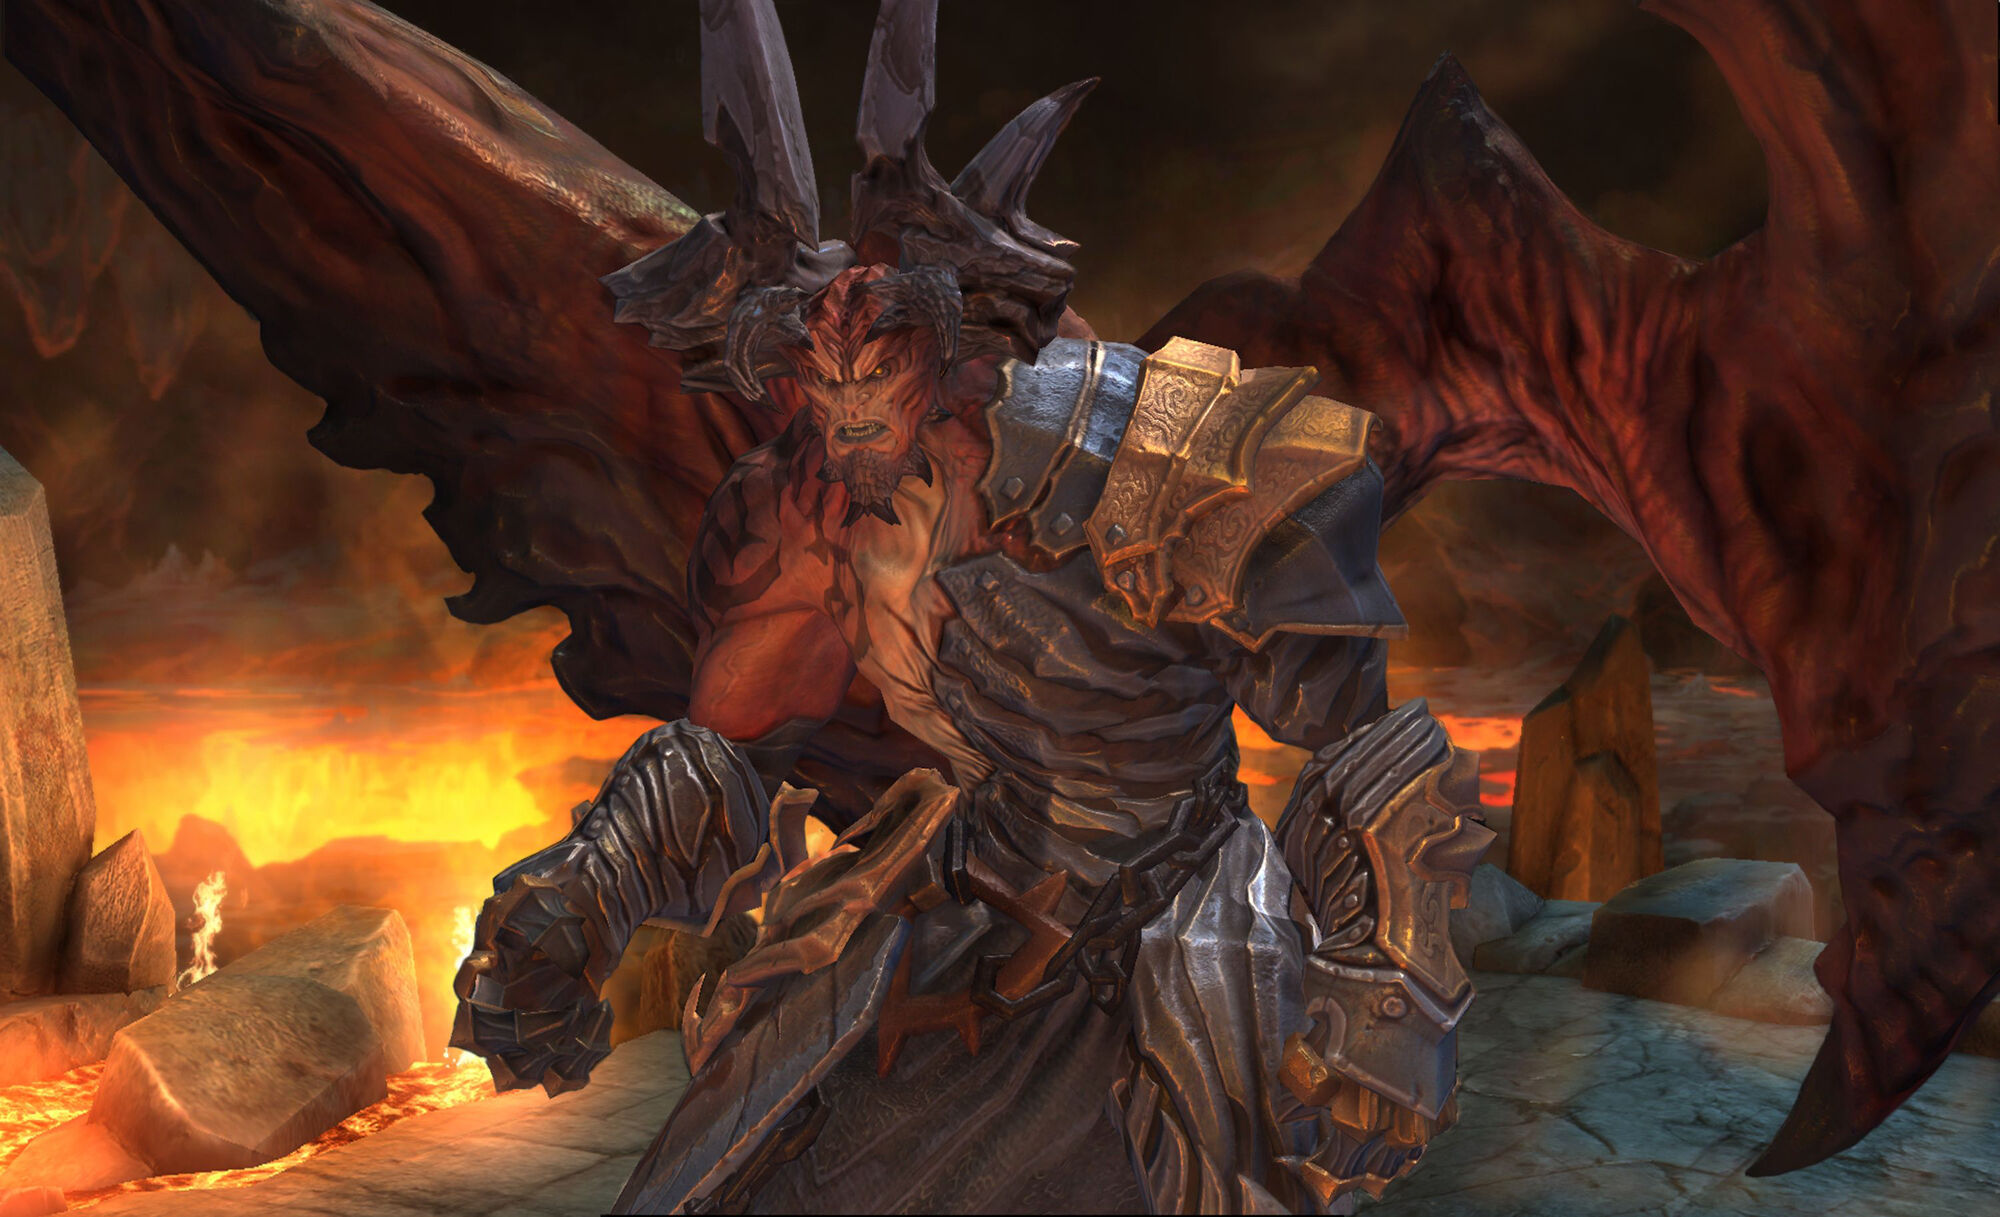 darksiders 2 samael